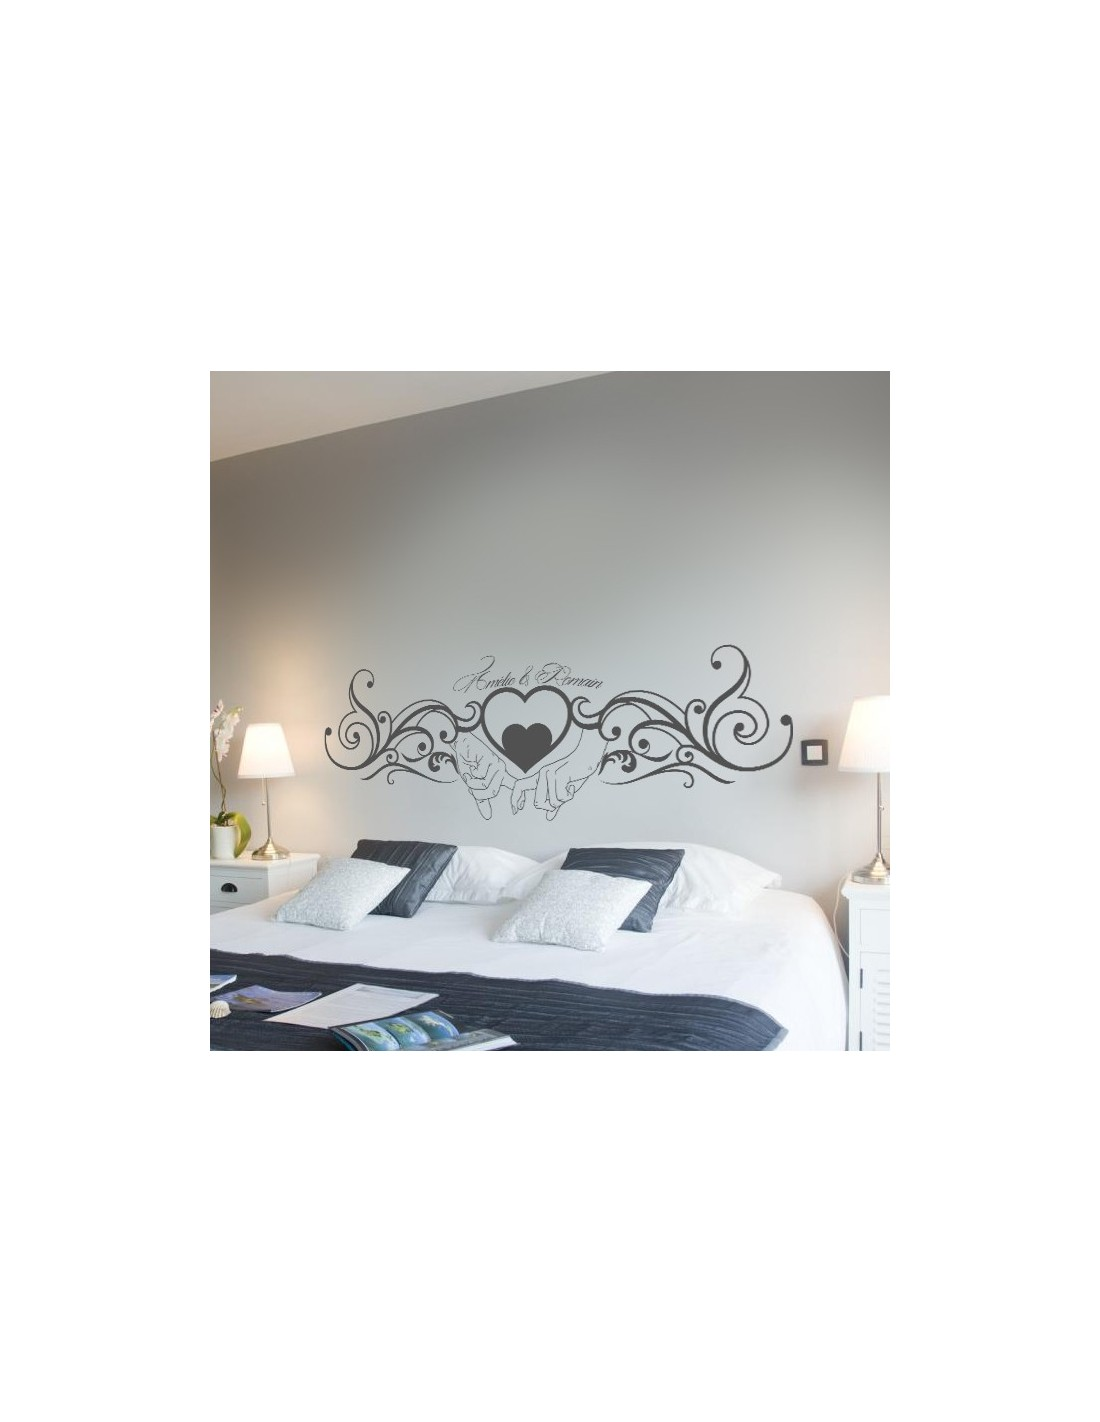 stickers muraux t te de lit sticker pr nom personnalis couple amour. Black Bedroom Furniture Sets. Home Design Ideas